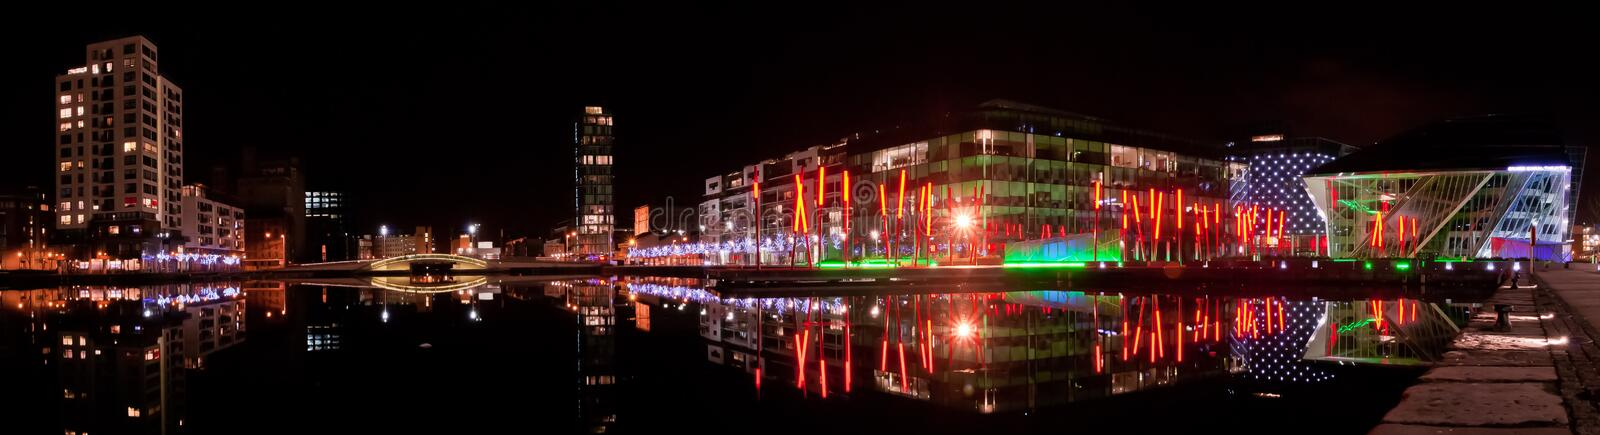 Grand Canal Theatre square panorama. Night panorama of the Grand Canal square Dublin docklands ireland. nightshot of the new theatre of Dublin Grand Canal royalty free stock photography